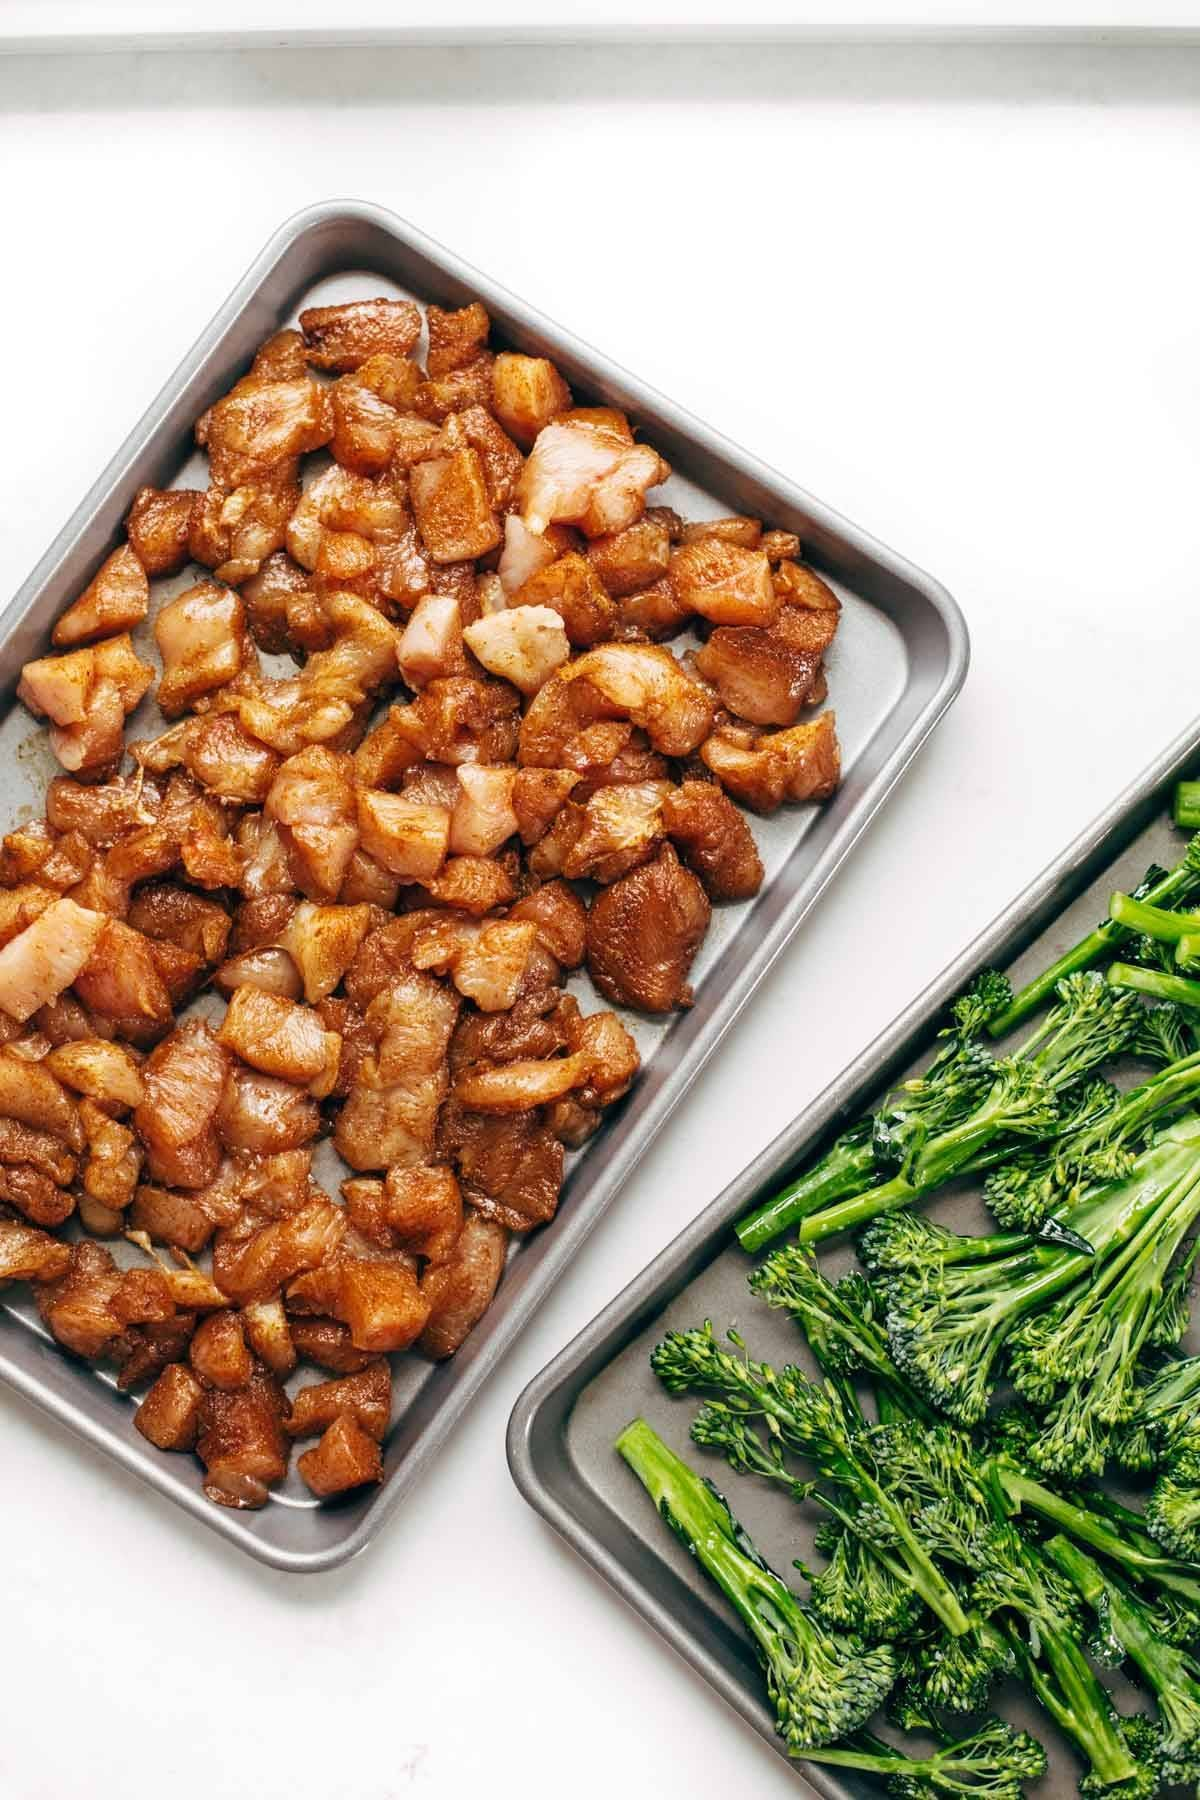 chicken and broccoli on pans